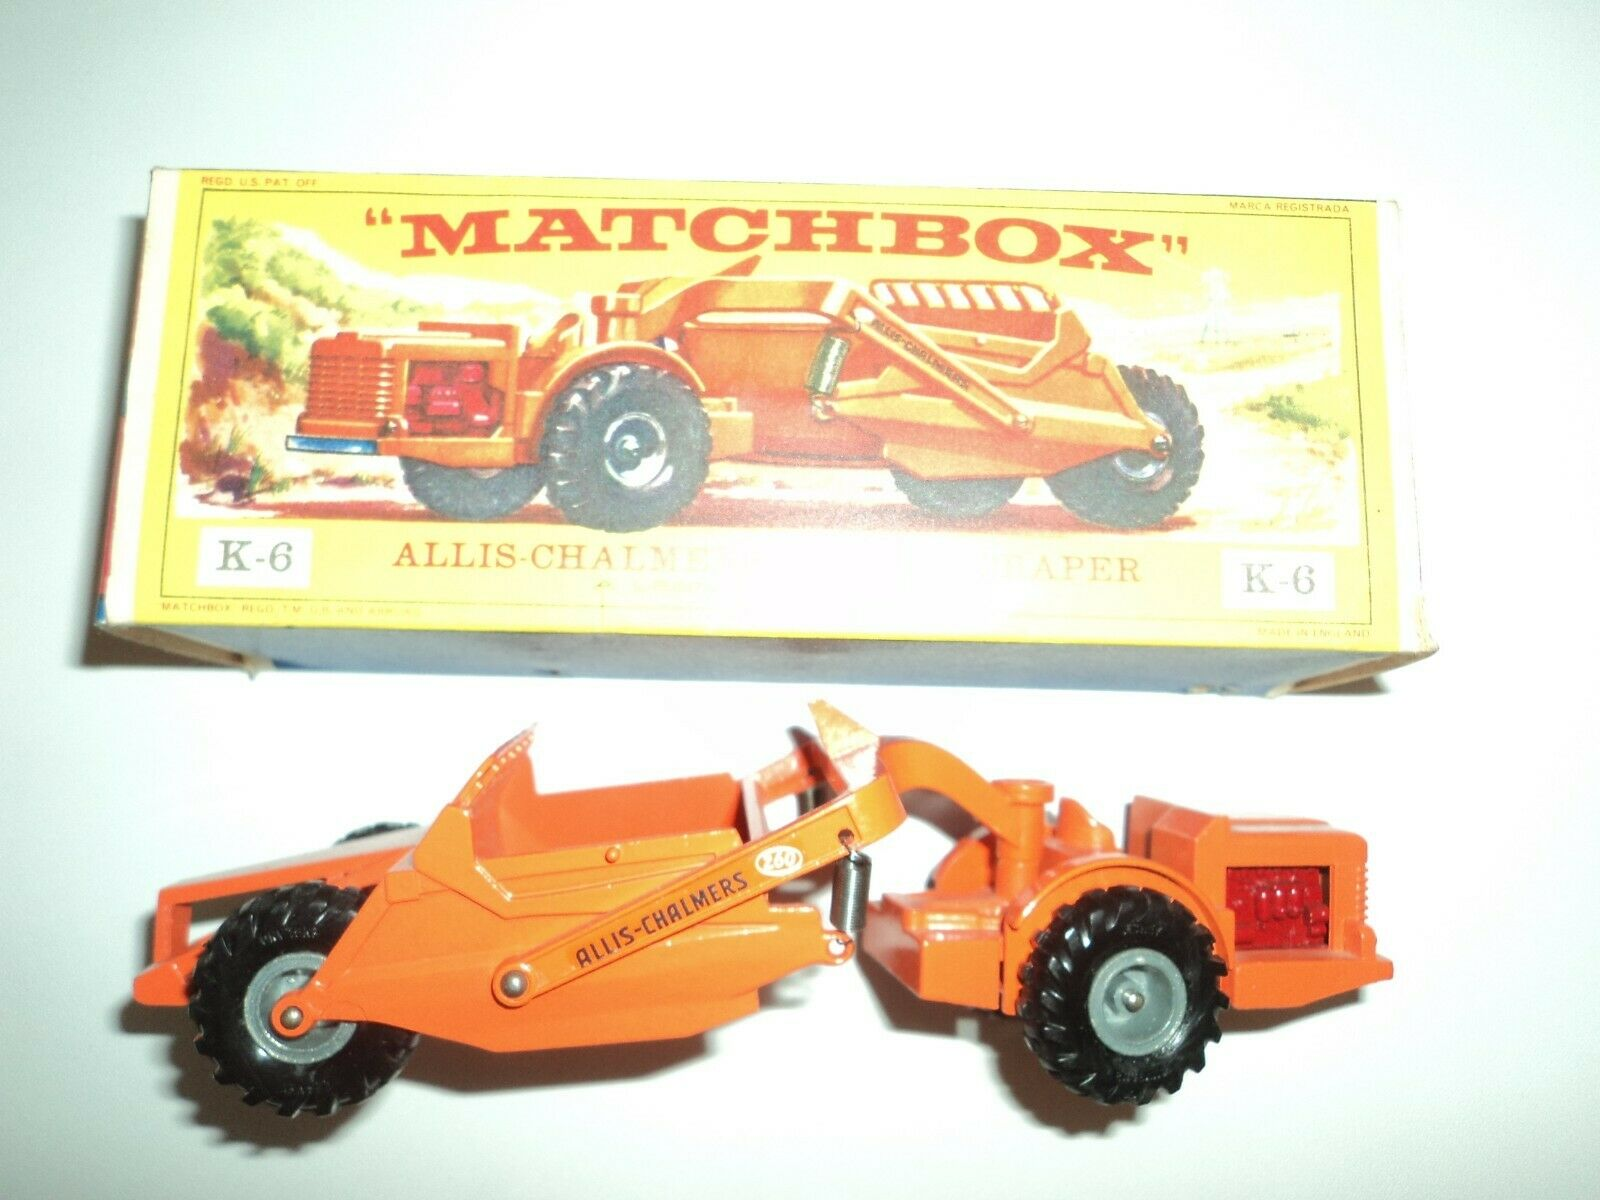 MATCHBOX KING Talla Allis Chalmers Earth Scraper K-6  mib